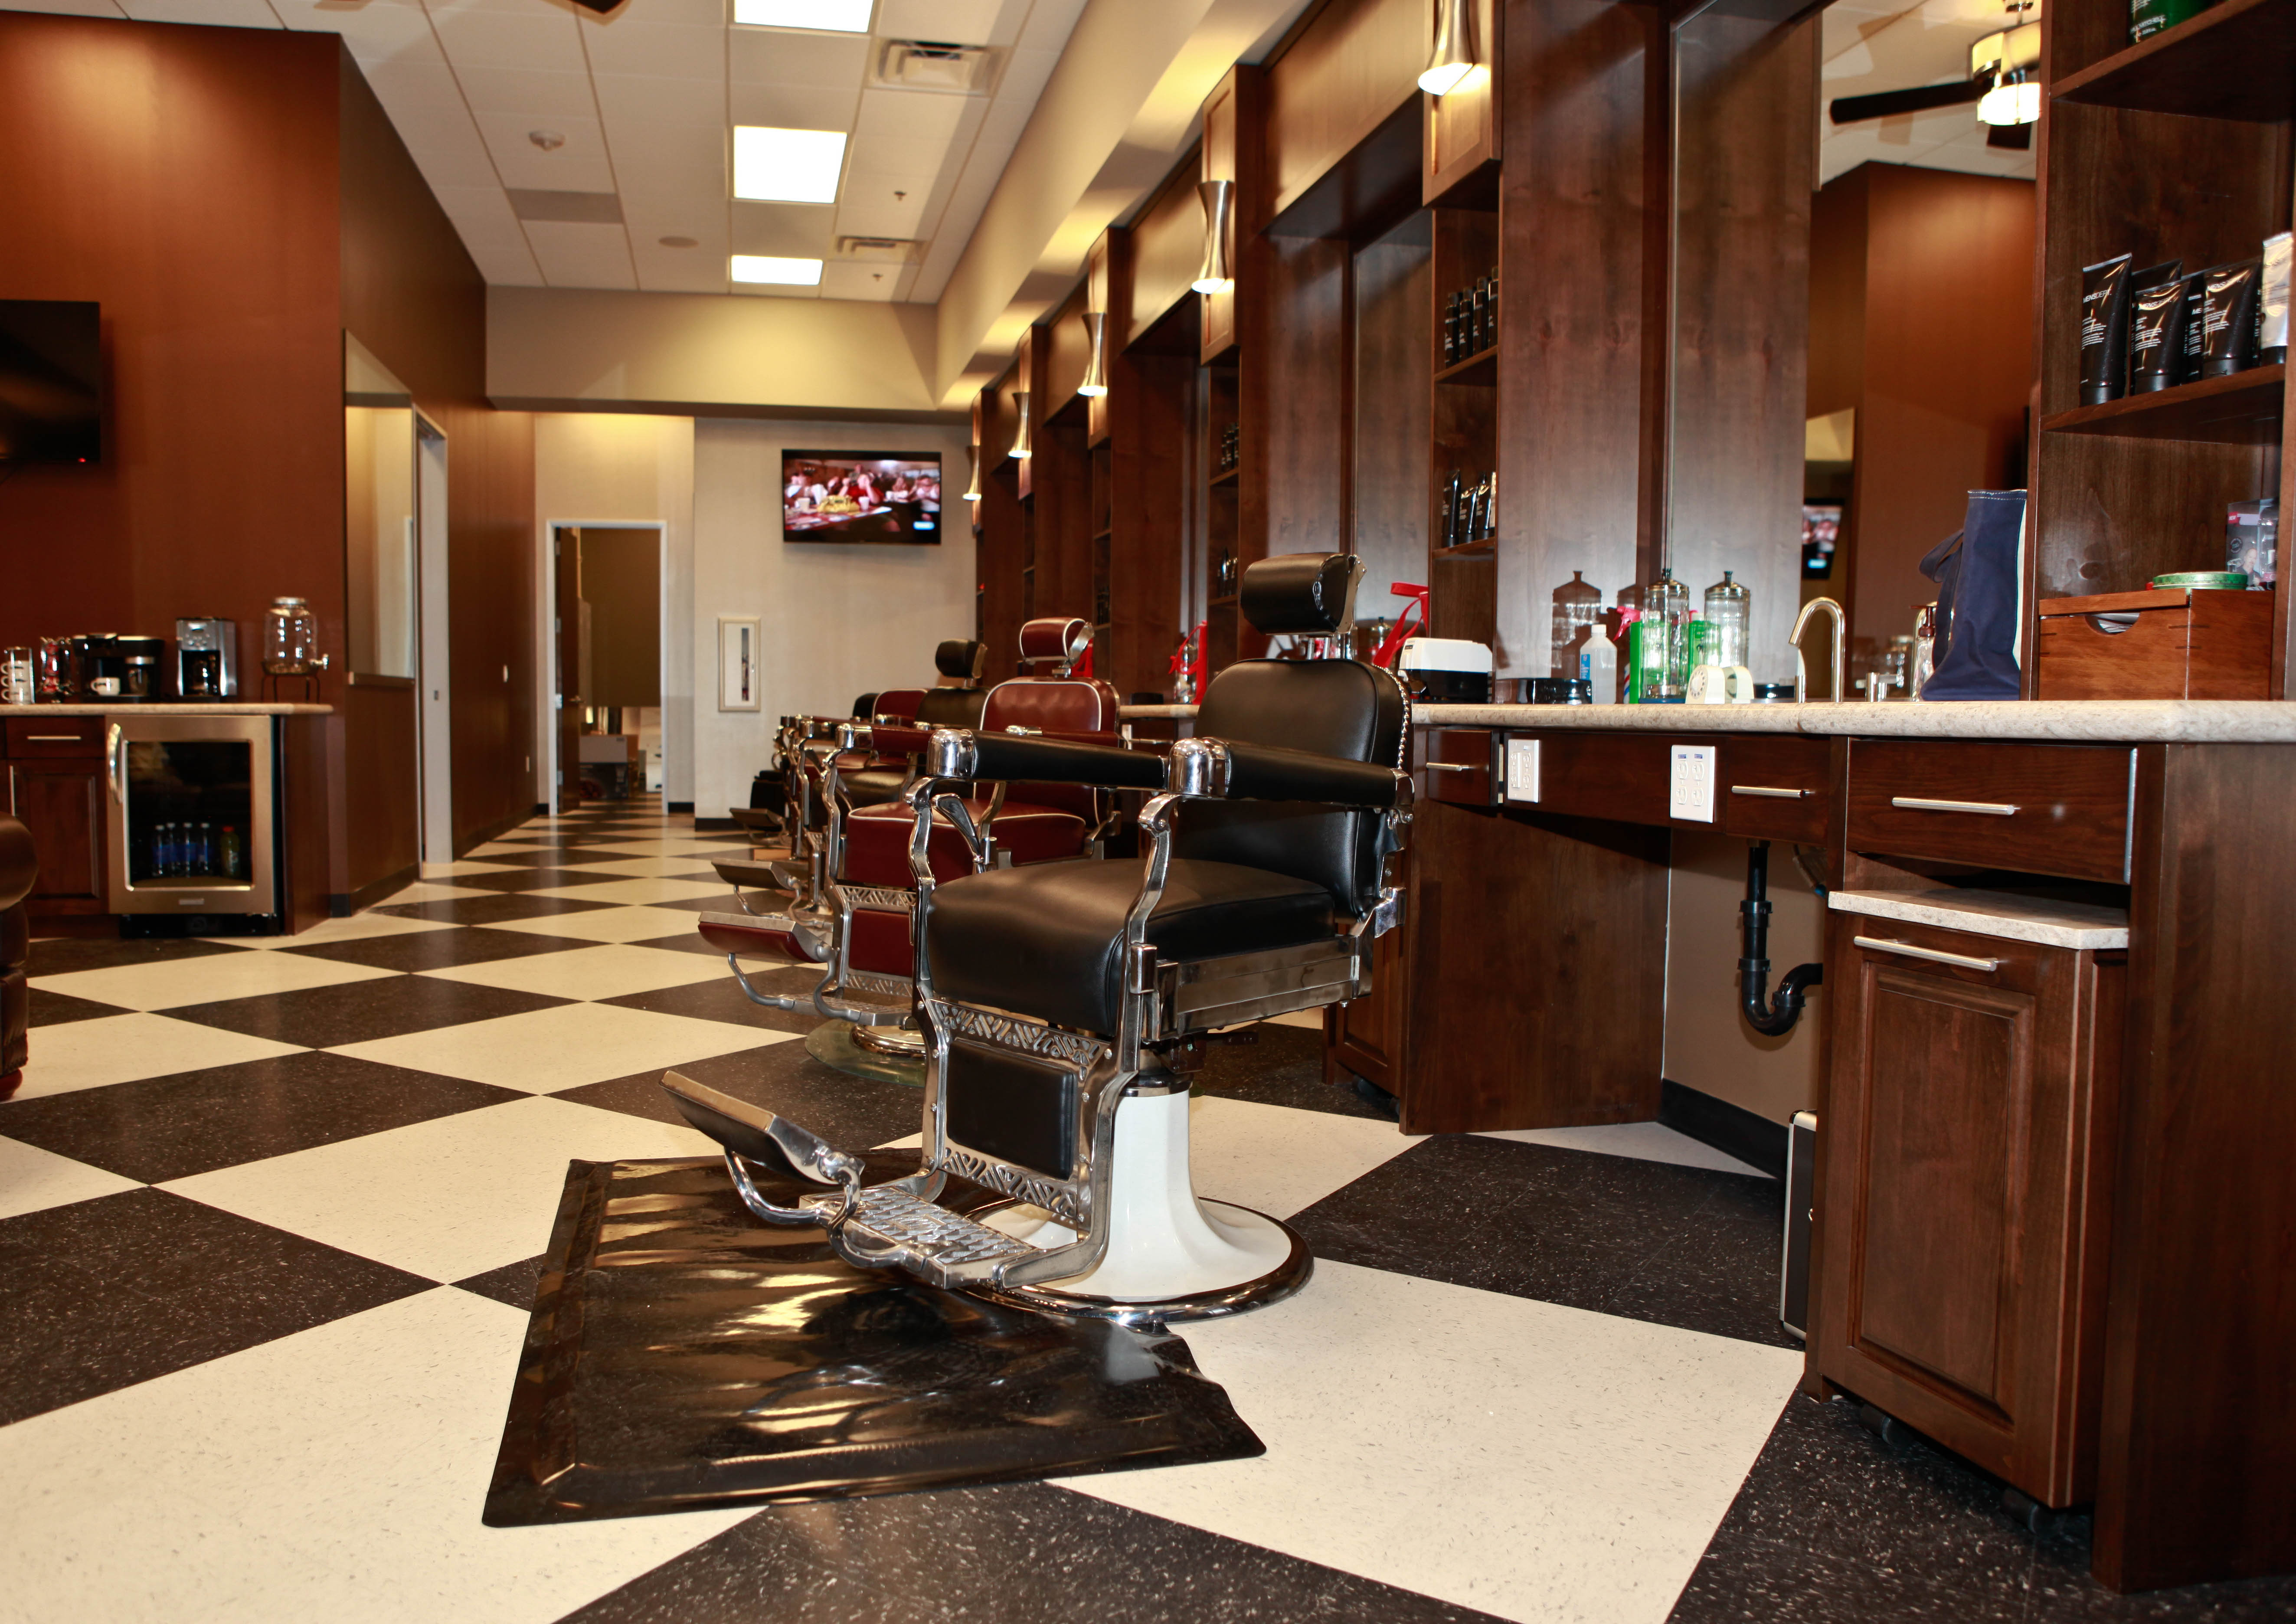 Barbershop Wallpapers High Quality Download Free